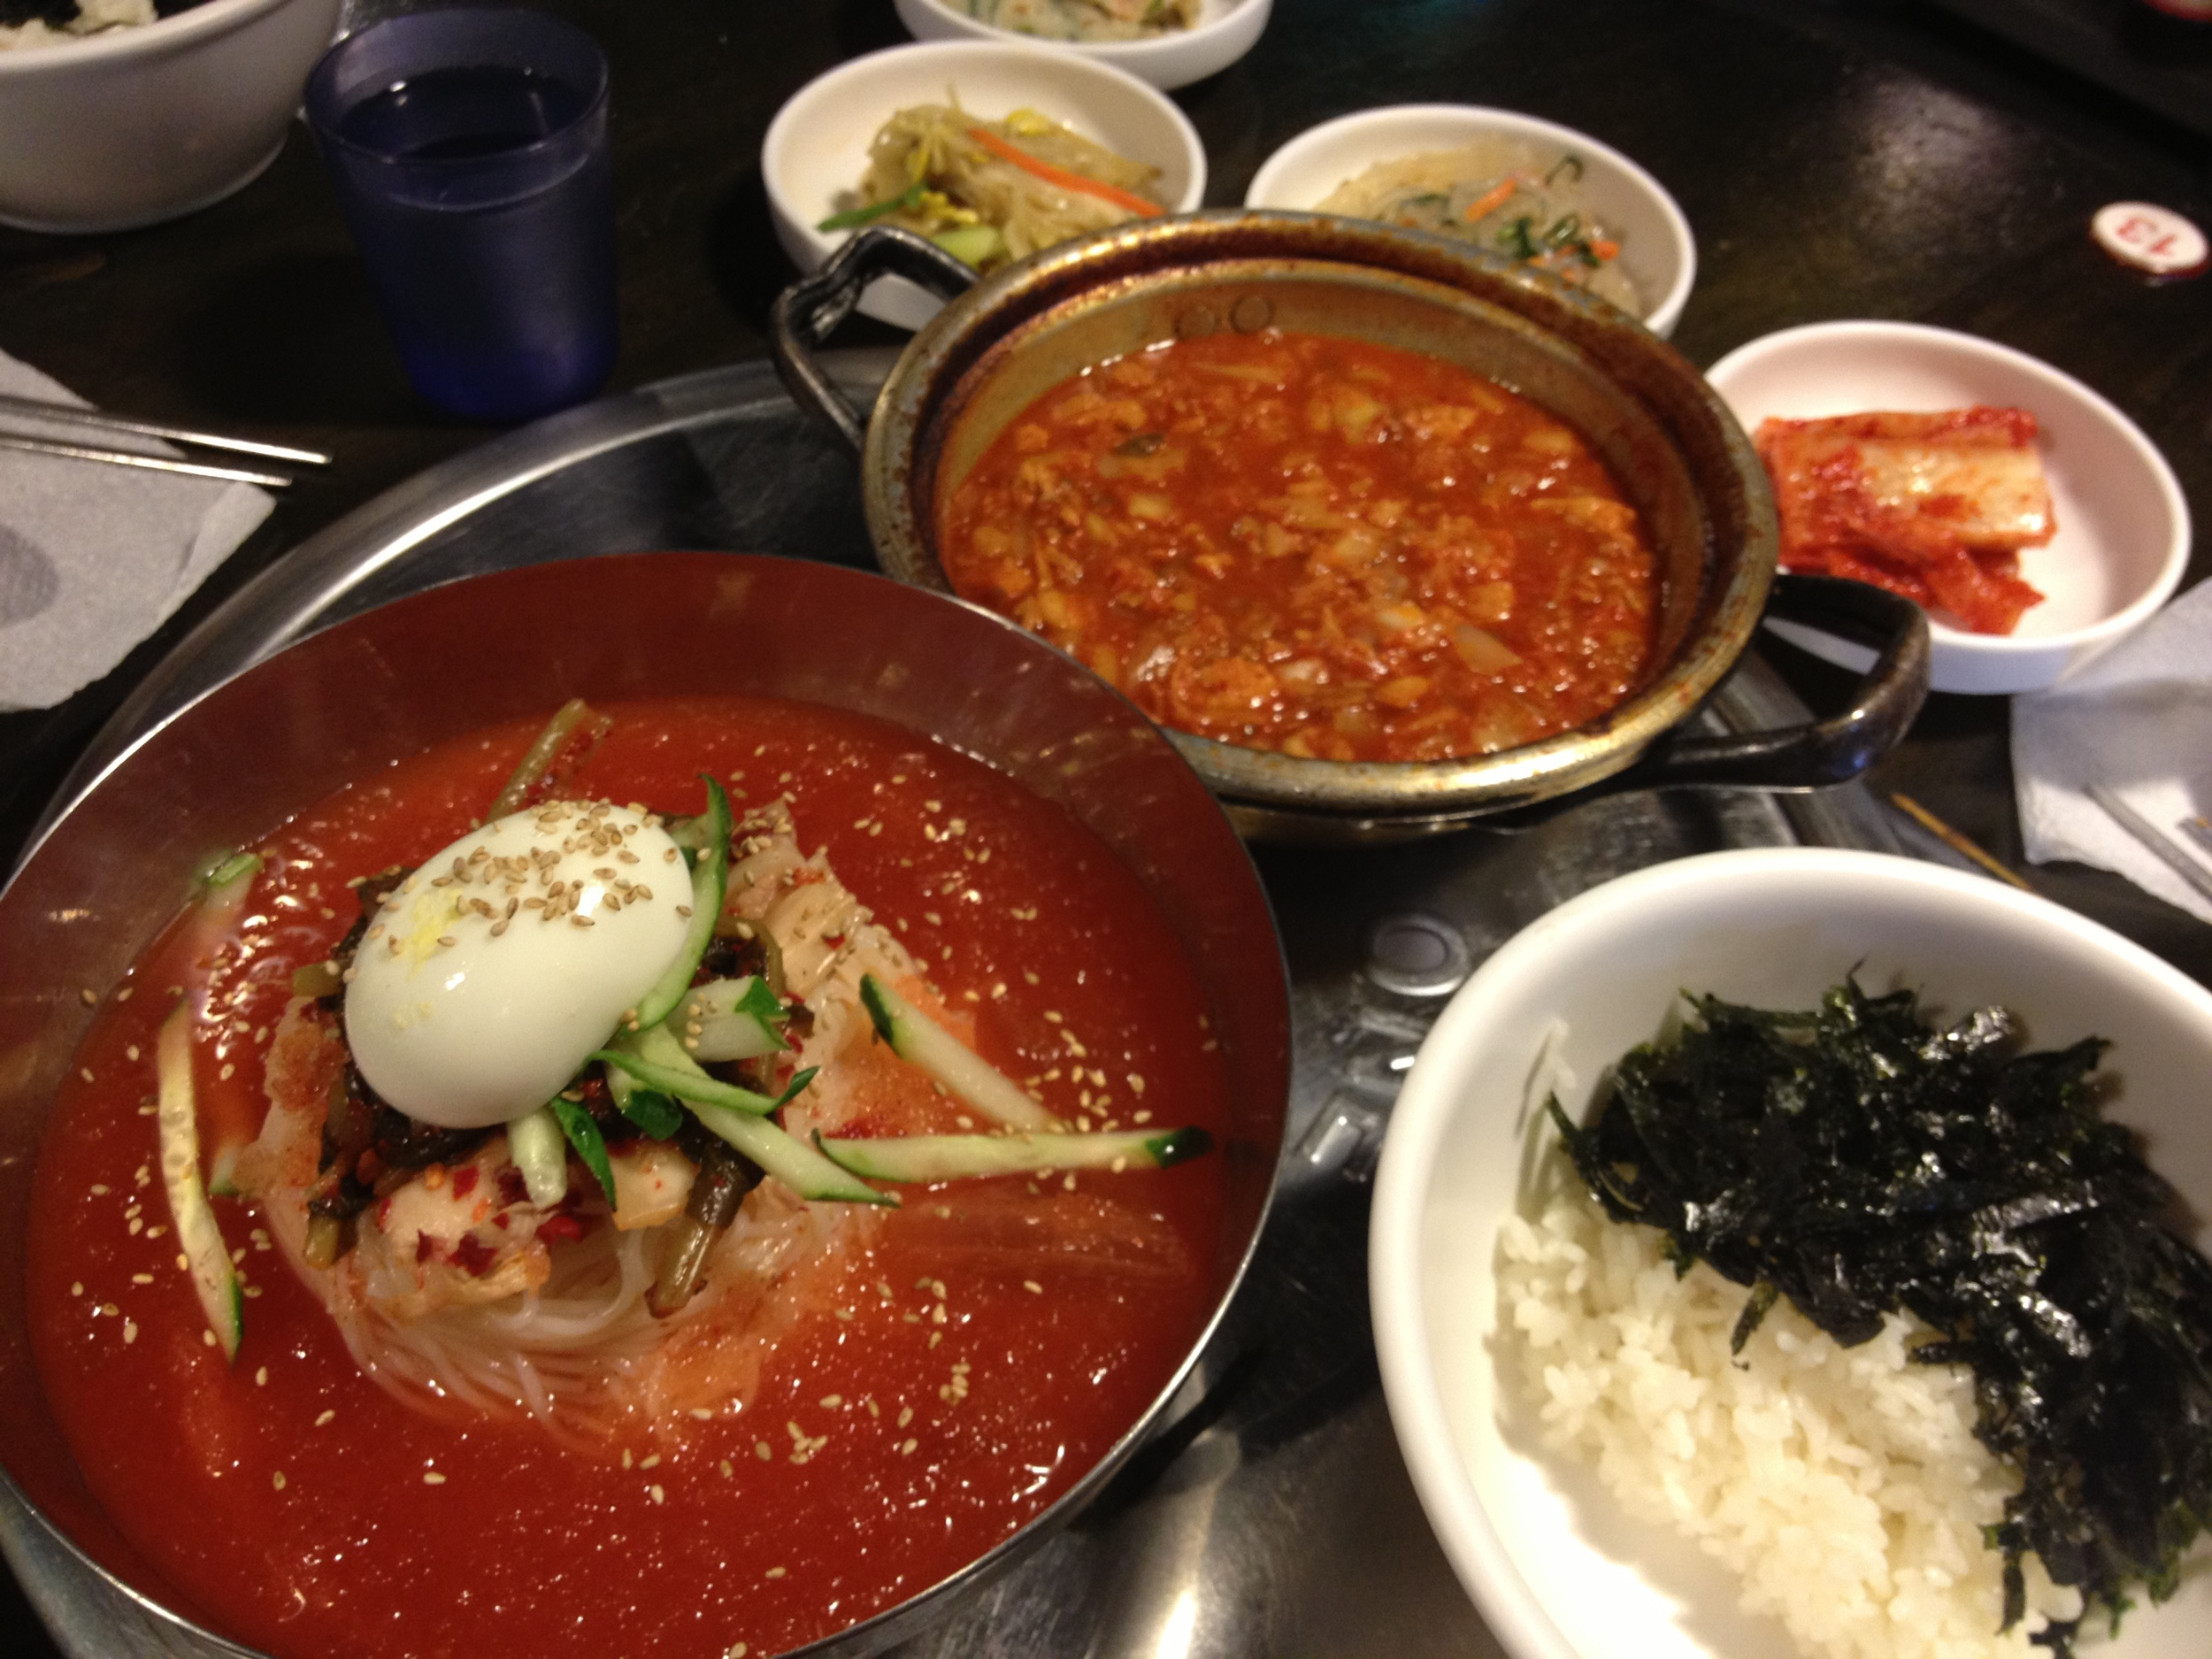 """Breakfast of champions: Had the hot kimchi jiggae and the cold kimchi noodles ( 김치말이국수) to have a nice """"balanced"""" meal of hot and cold dishes for breakfast one morning! Love that this place is 24 hours!"""